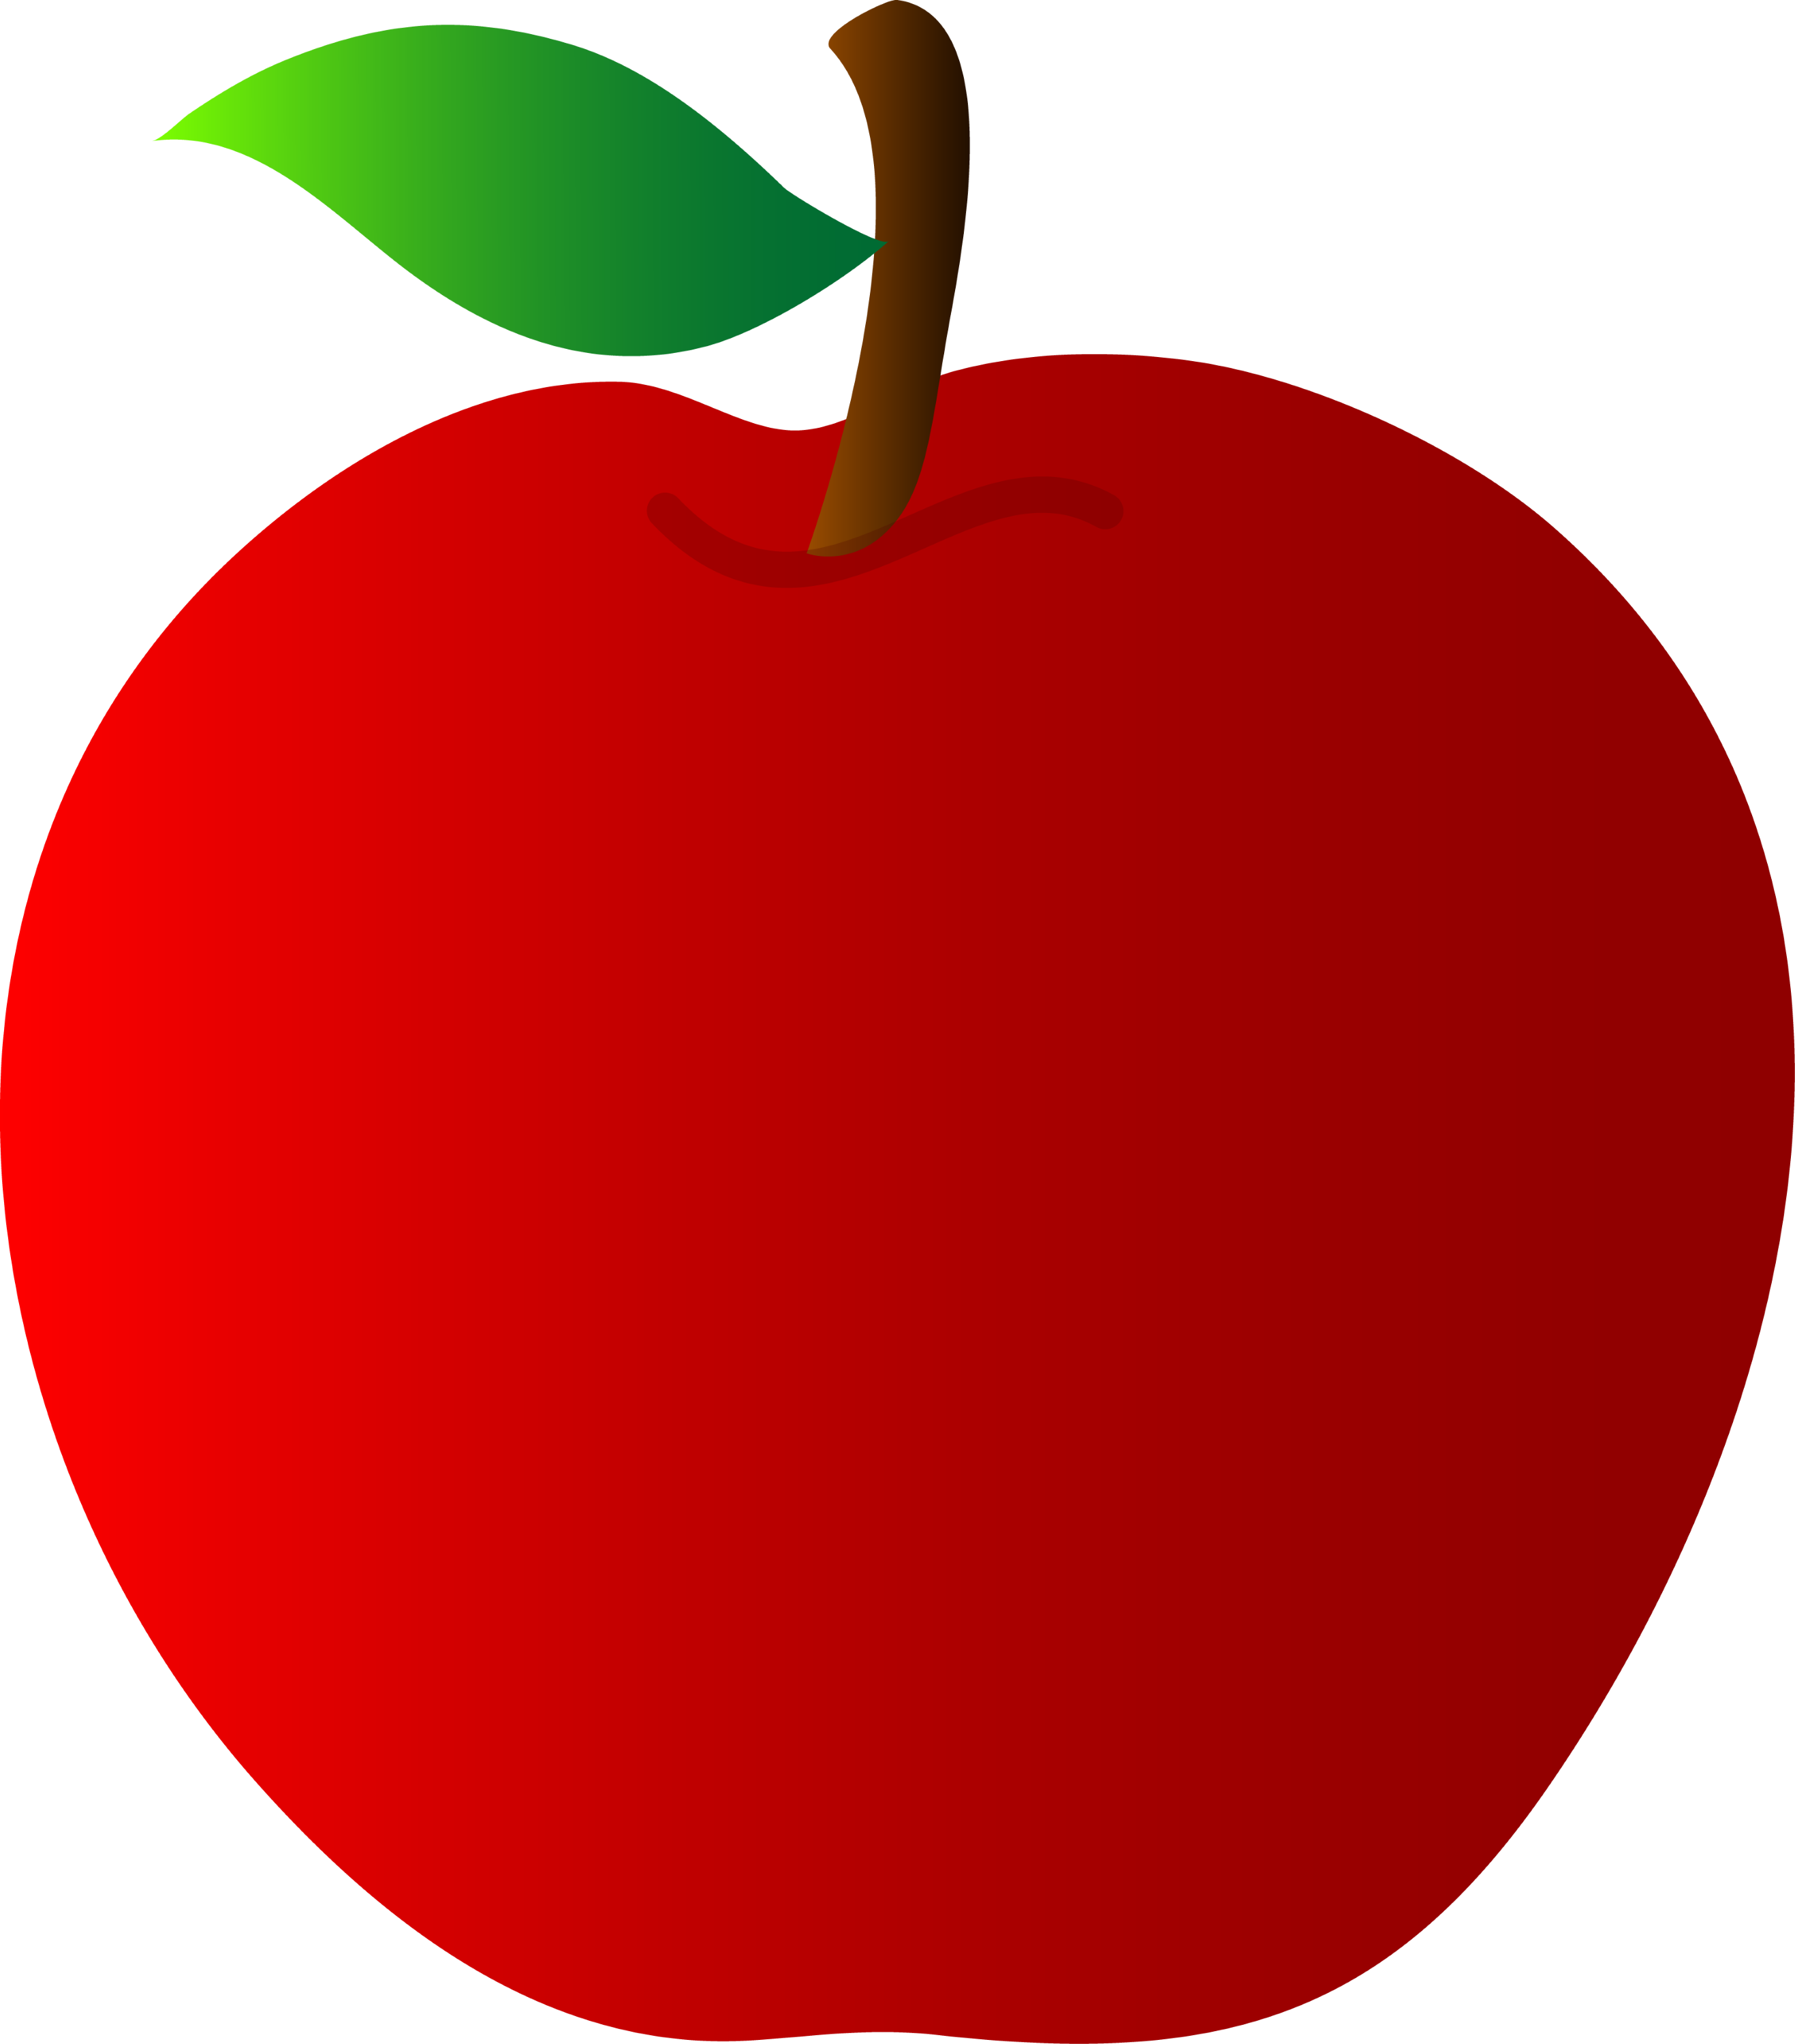 clipart picture of apple - photo #32